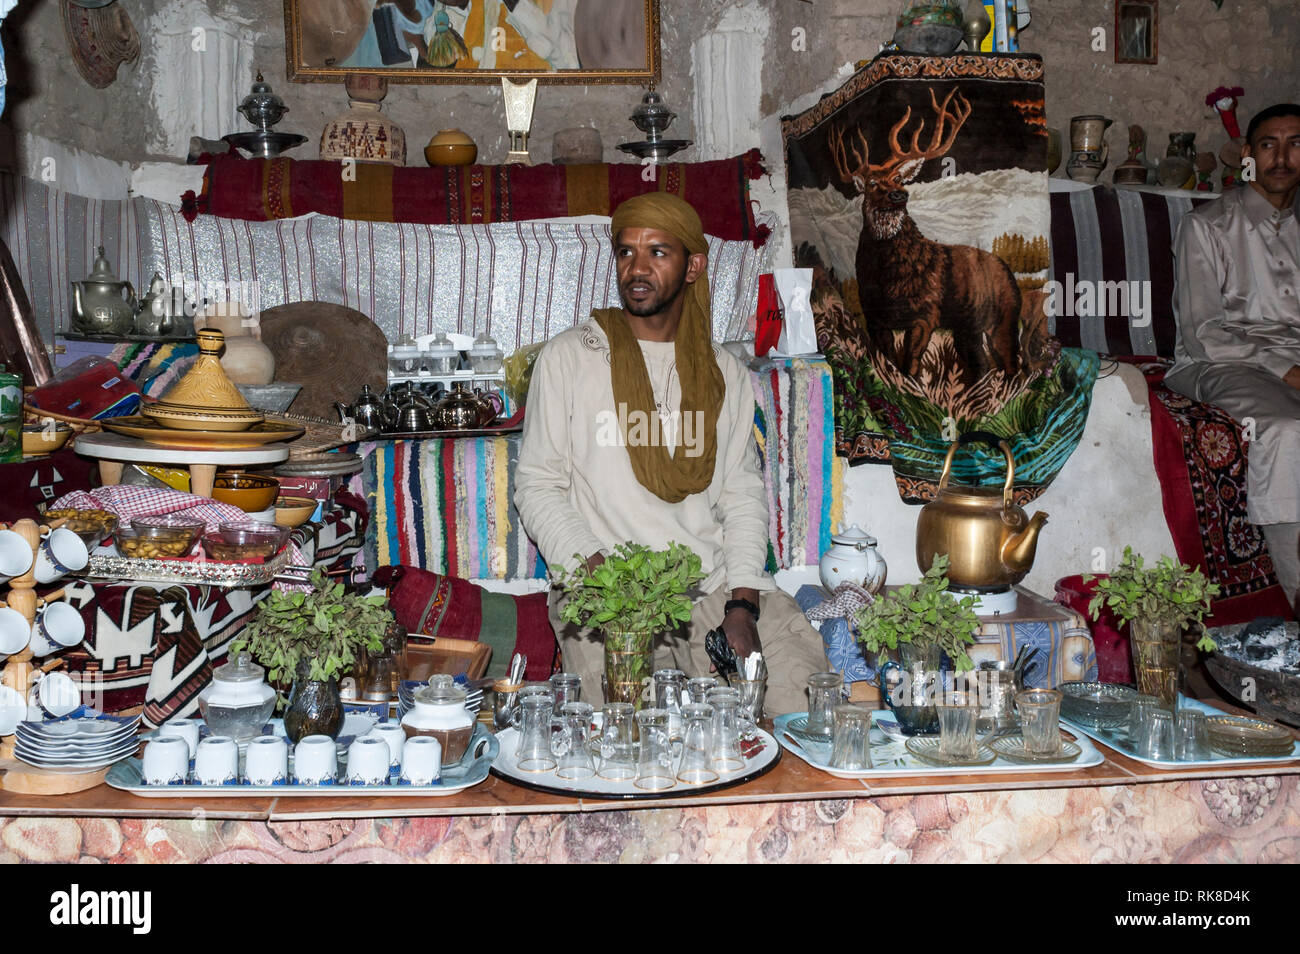 Ghadames, Libya - 11/03/2006: A quaint tee shop in the ancient white city of Ghadames - Stock Image